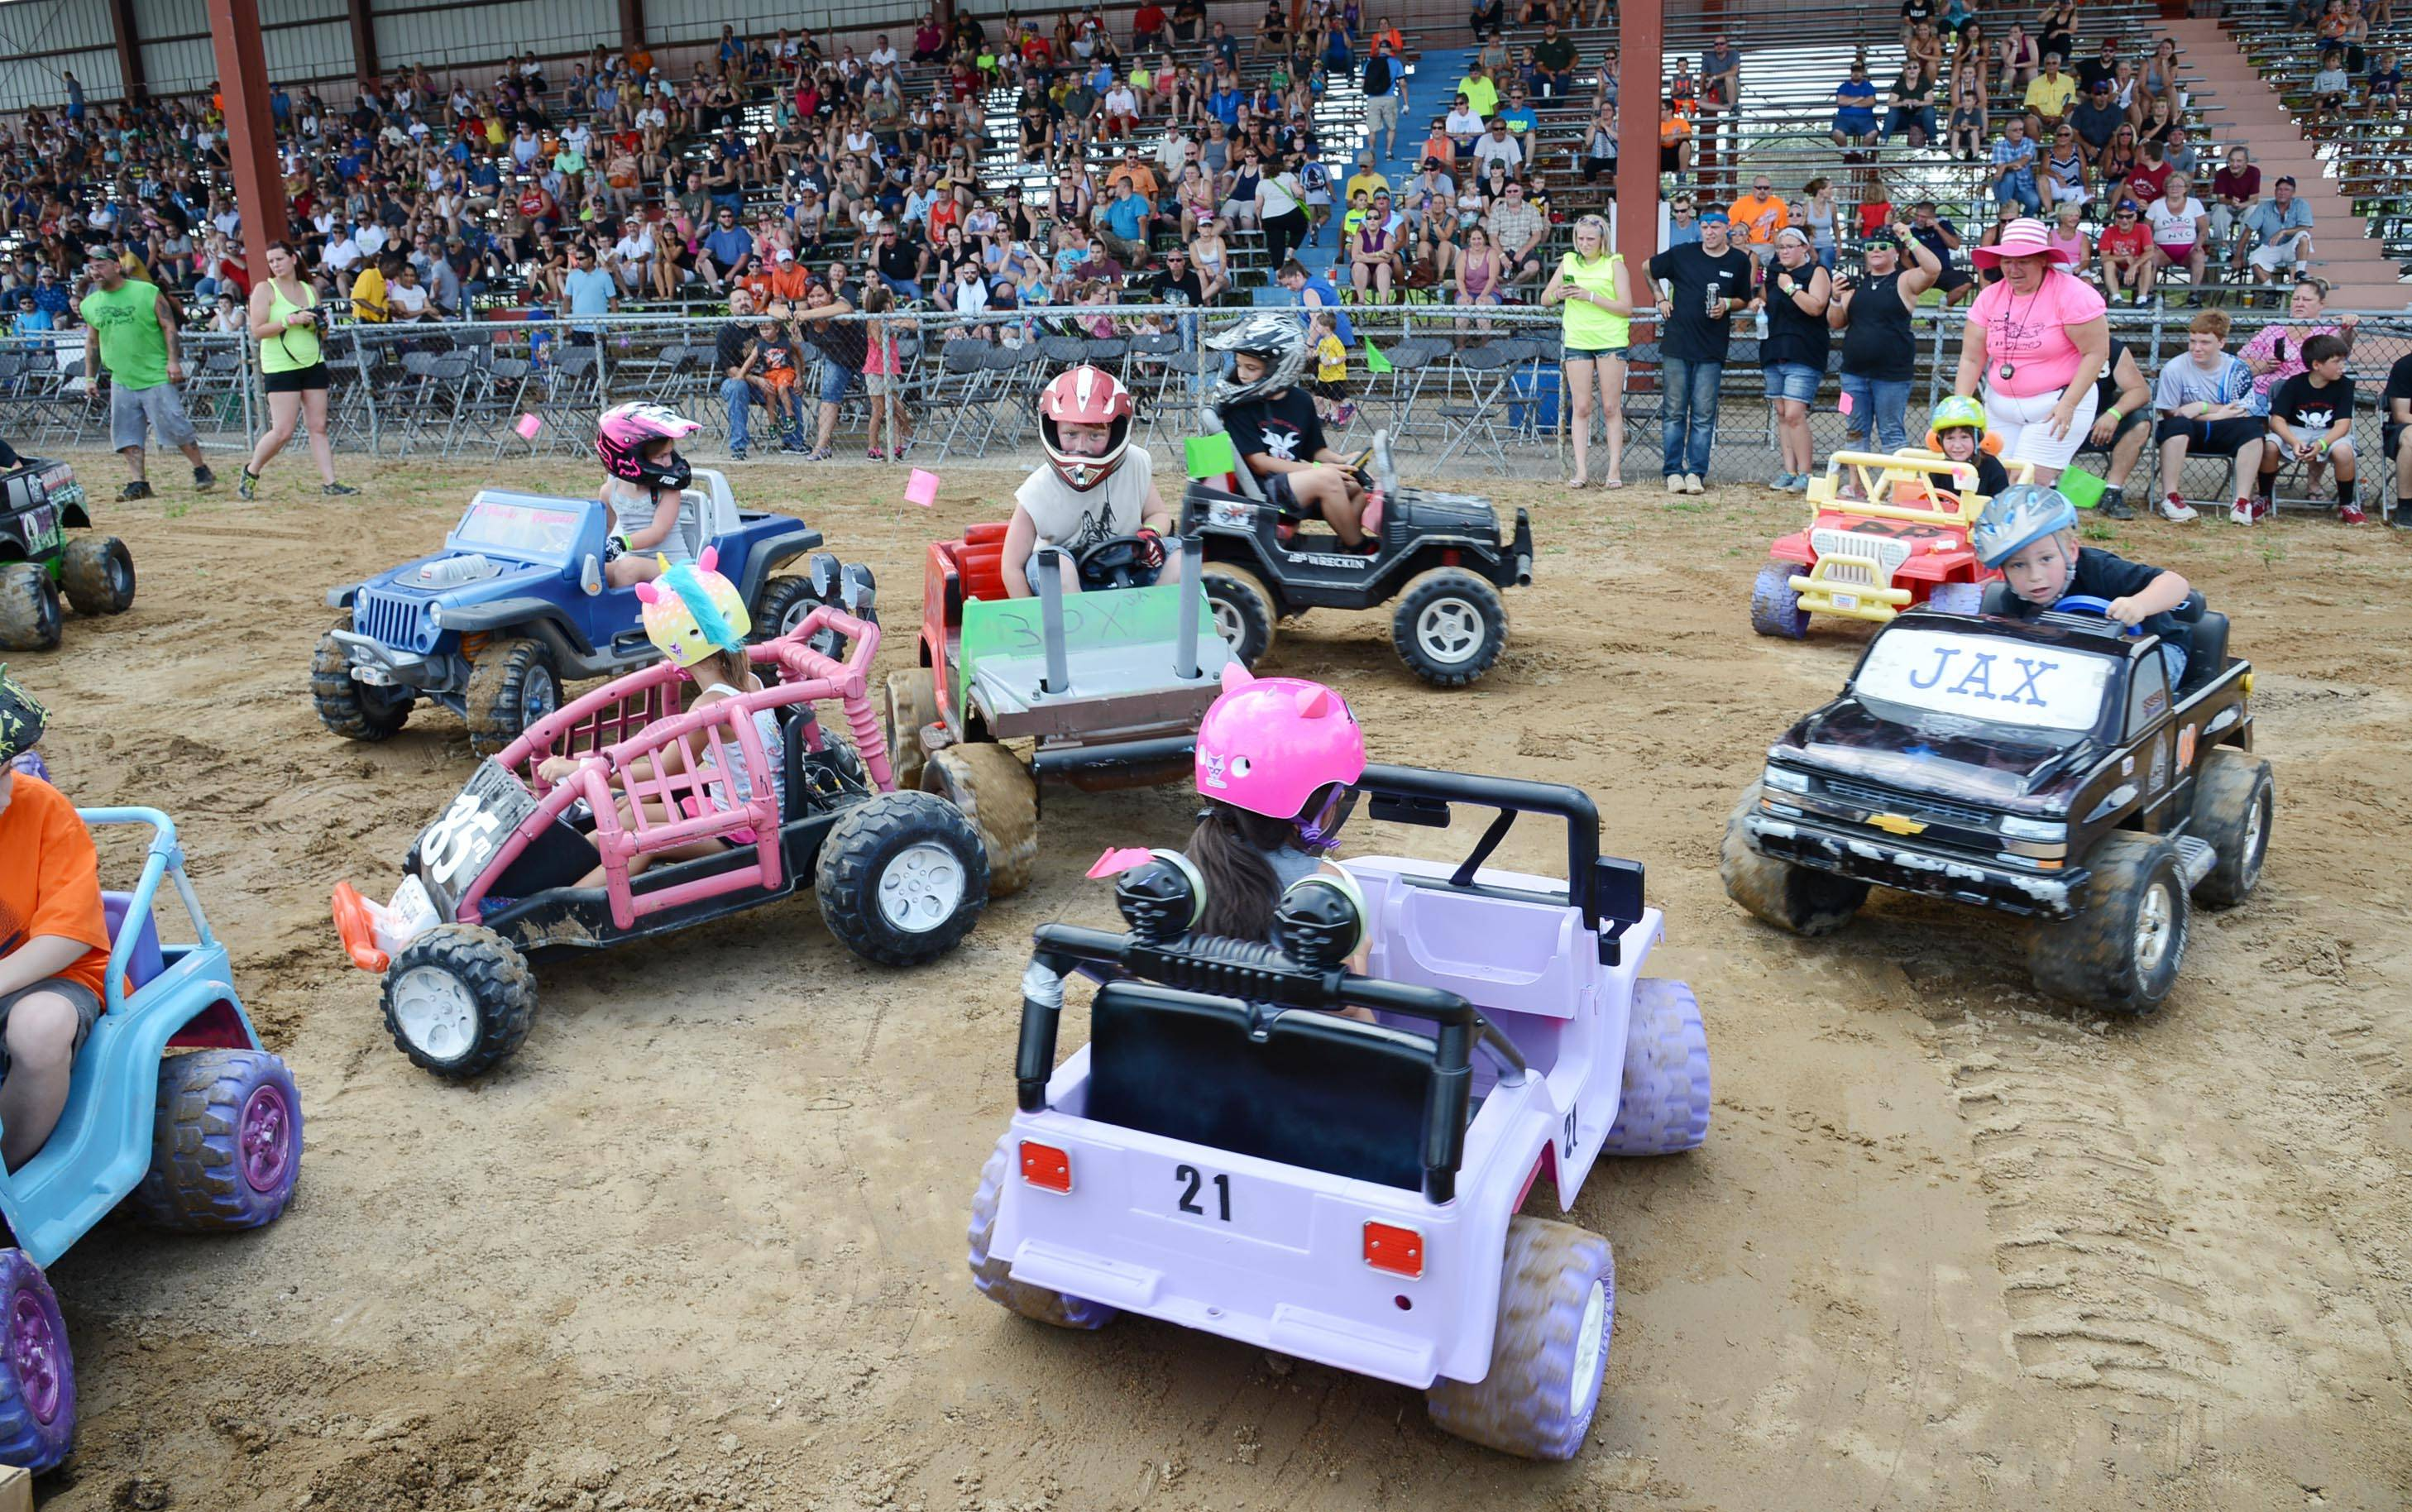 At right, About a dozen children compete in the Power Wheels Demo Derby Sunday at the Kane County Fair in St. Charles. The plastic, electric toy car event was won by Liliana Delao, 5, of Franklin Park, in the foreground in her purple Jeep.